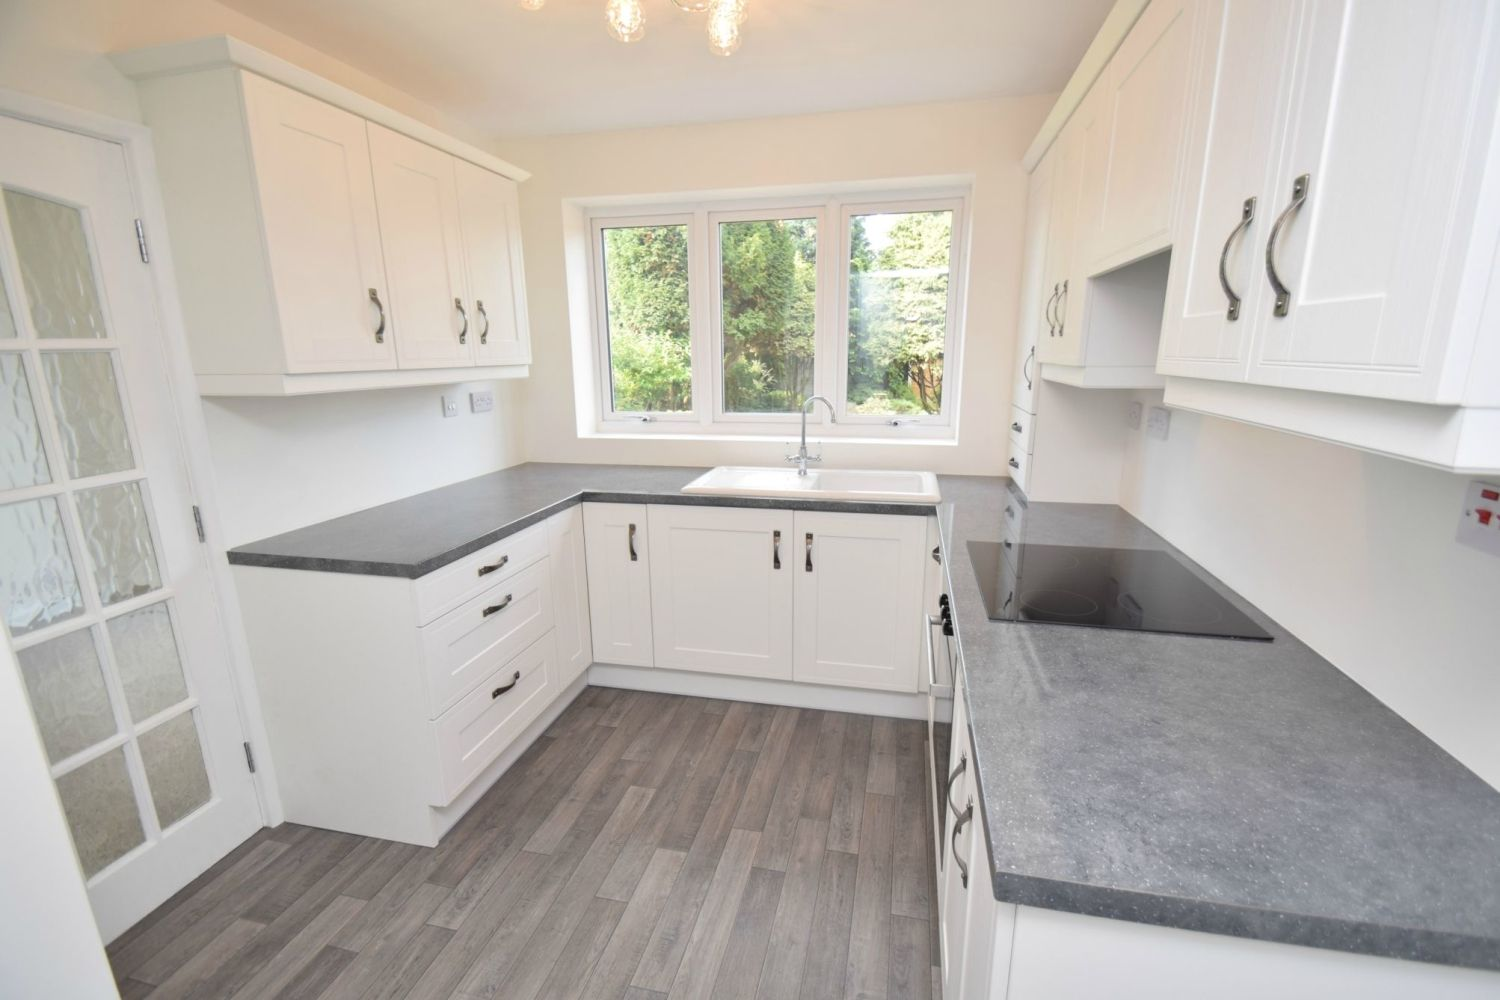 3 bed semi-detached for sale in Beachcroft Road, Wall Heath  - Property Image 5